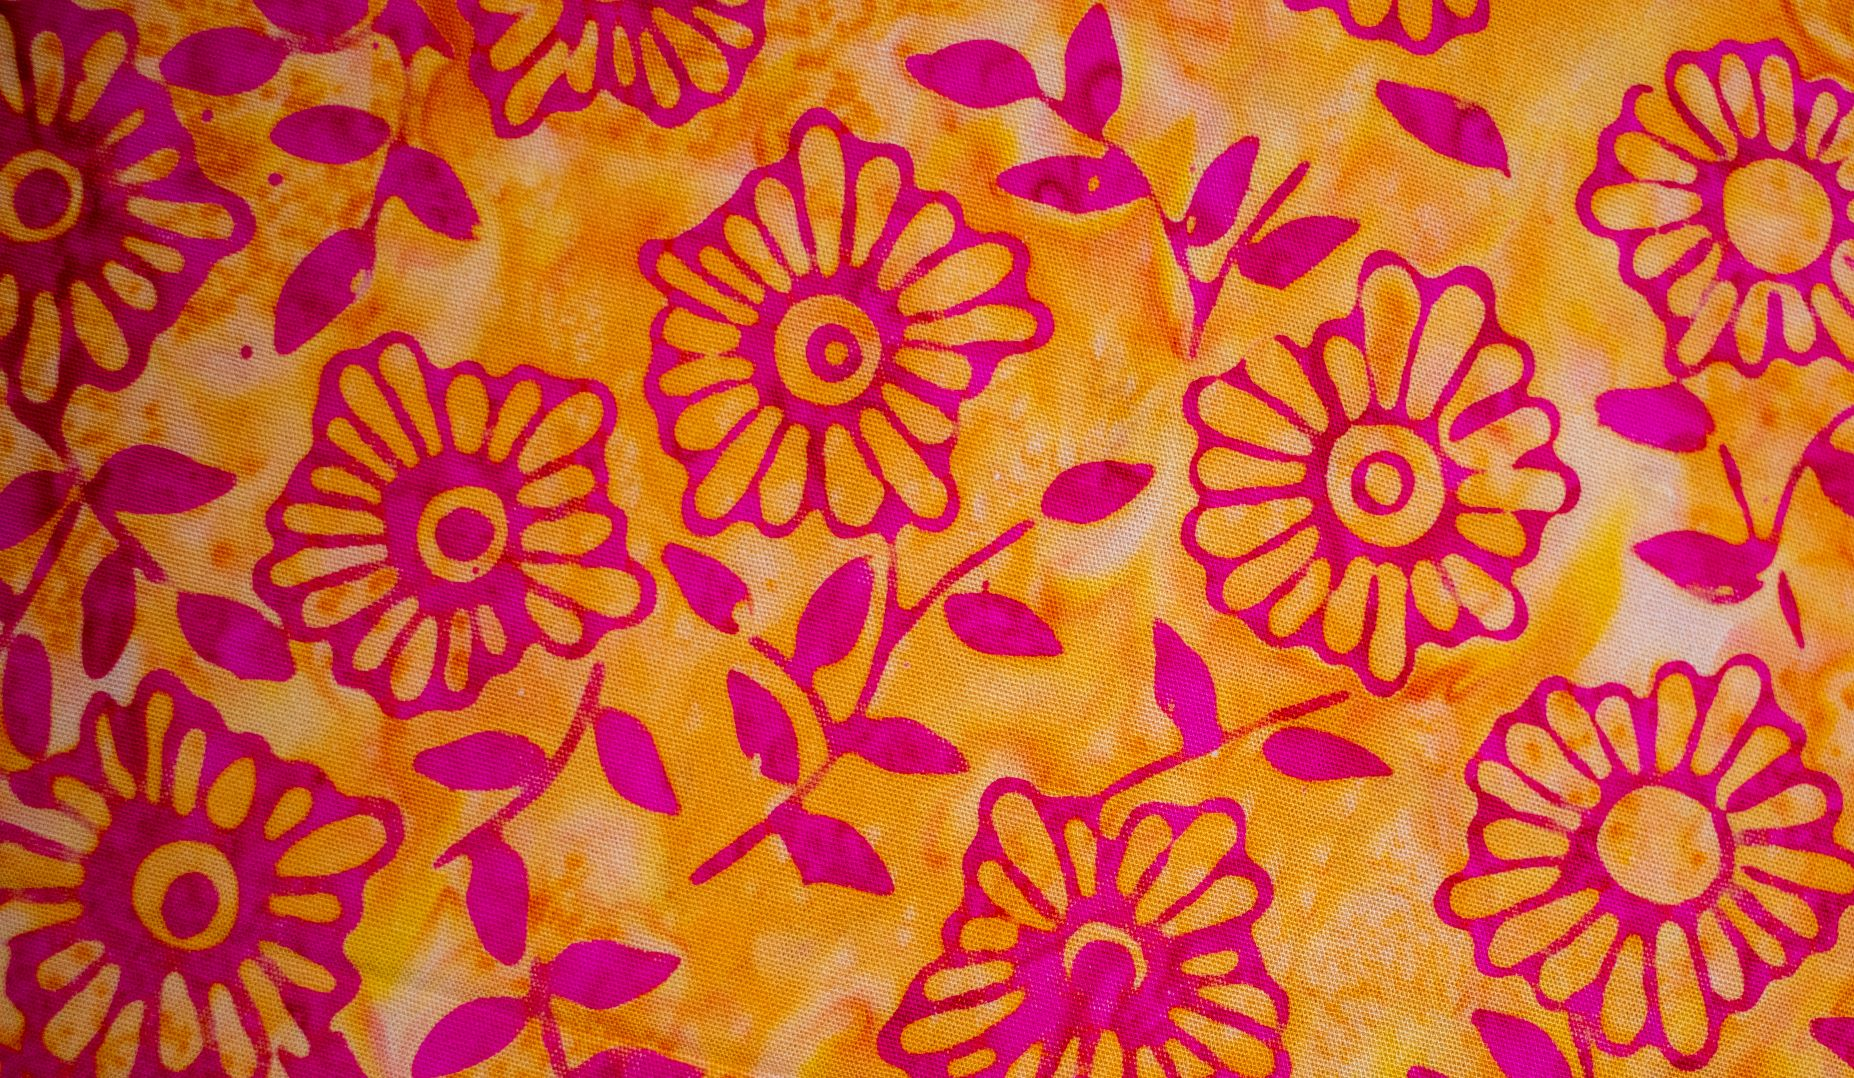 Face Covering Orange with Pink Flowers